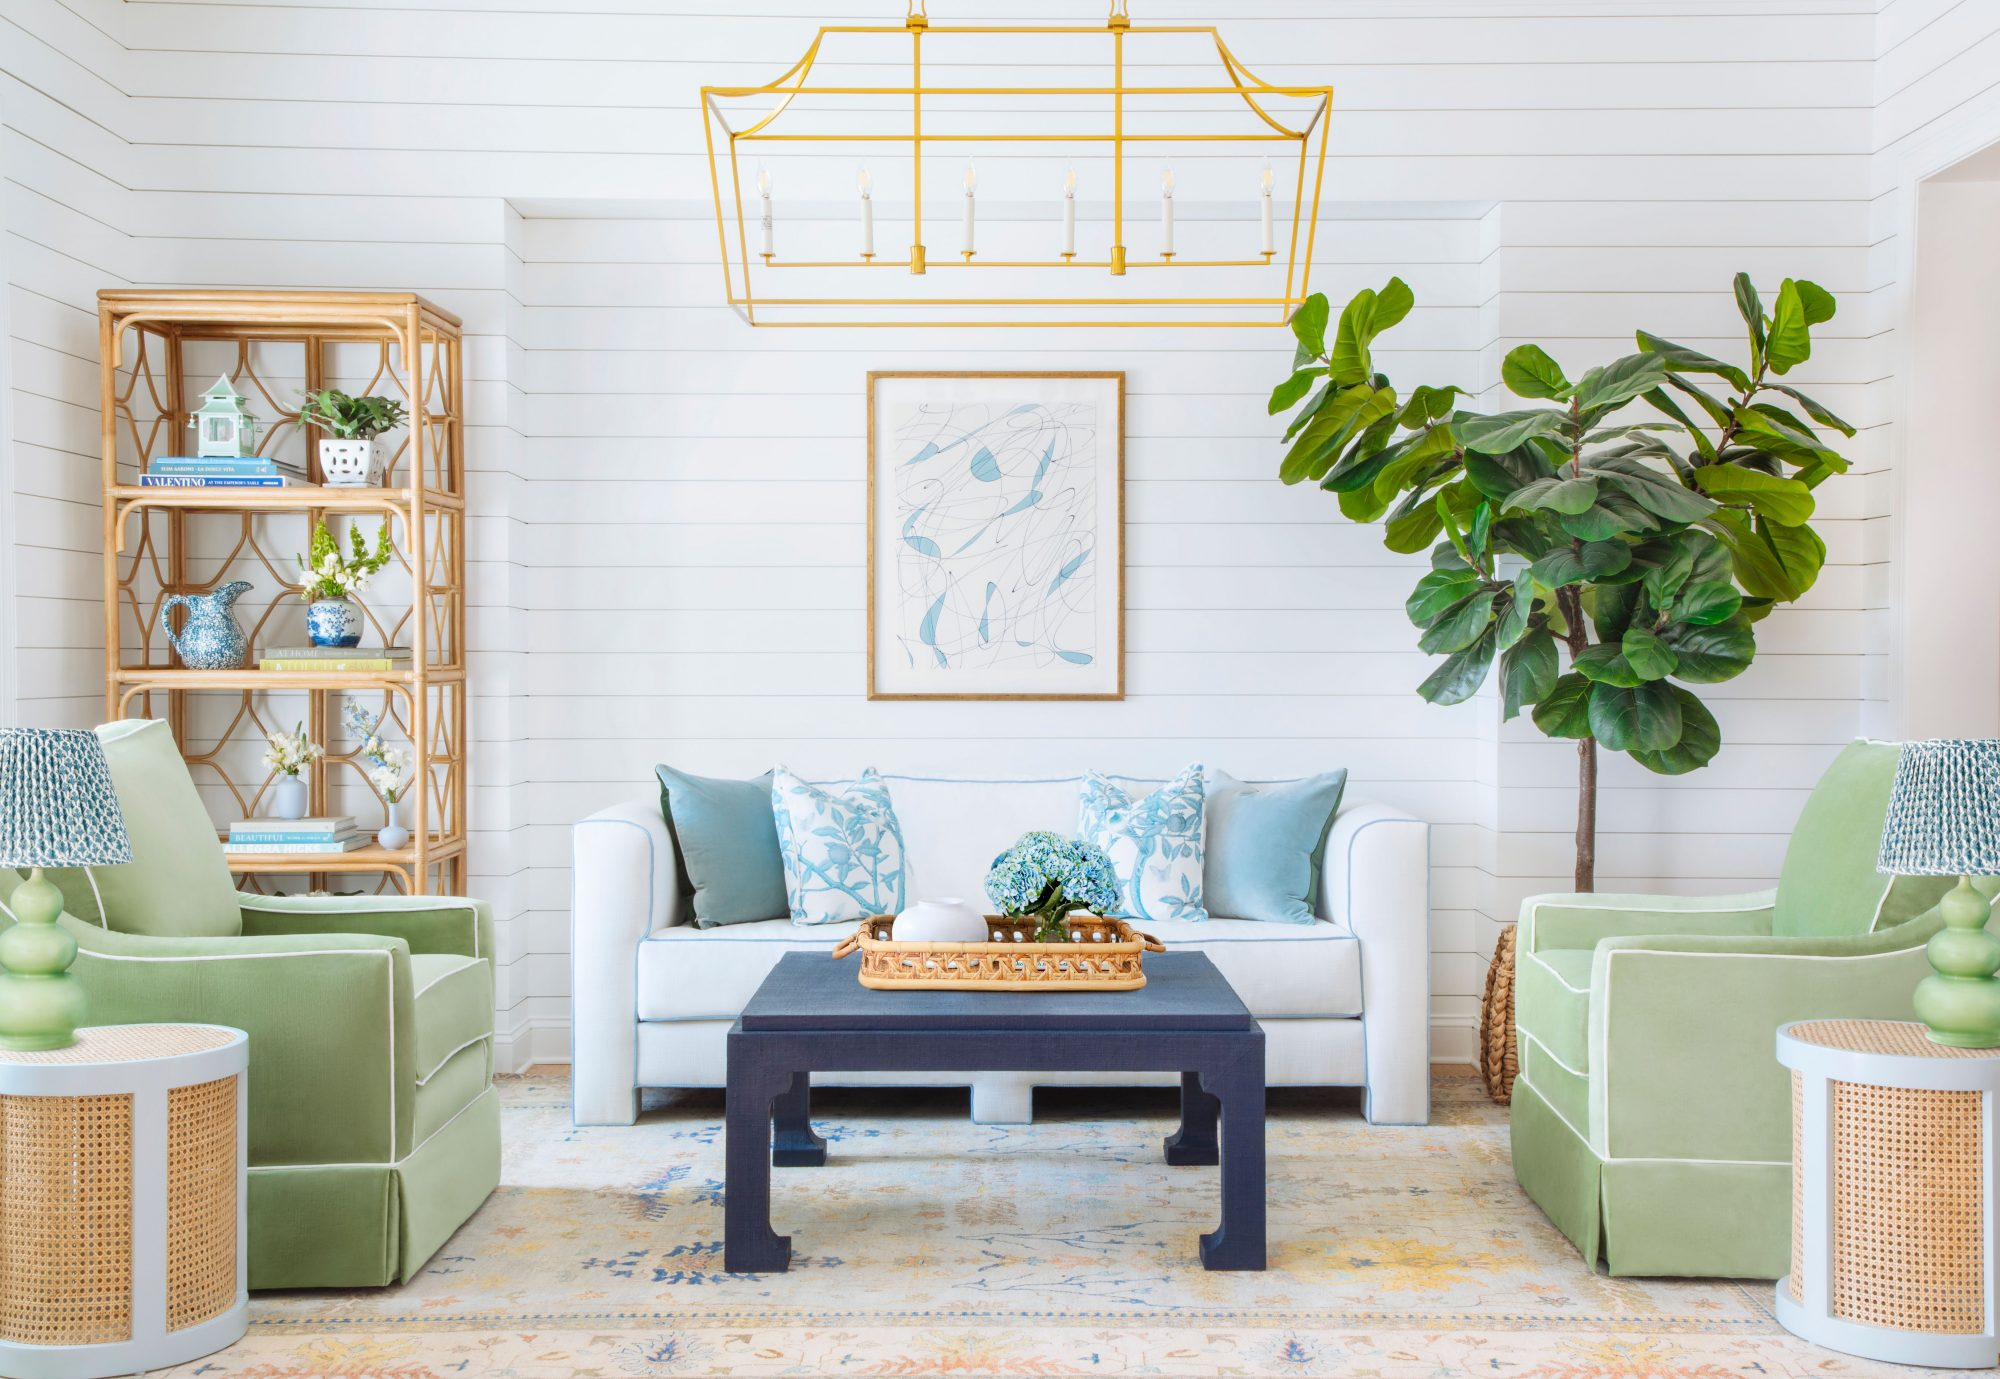 2021's interior design trends are all about comfort, livability, and having fun. 10 Home Decor Trends That Will Be Huge In 2021 Southern Living